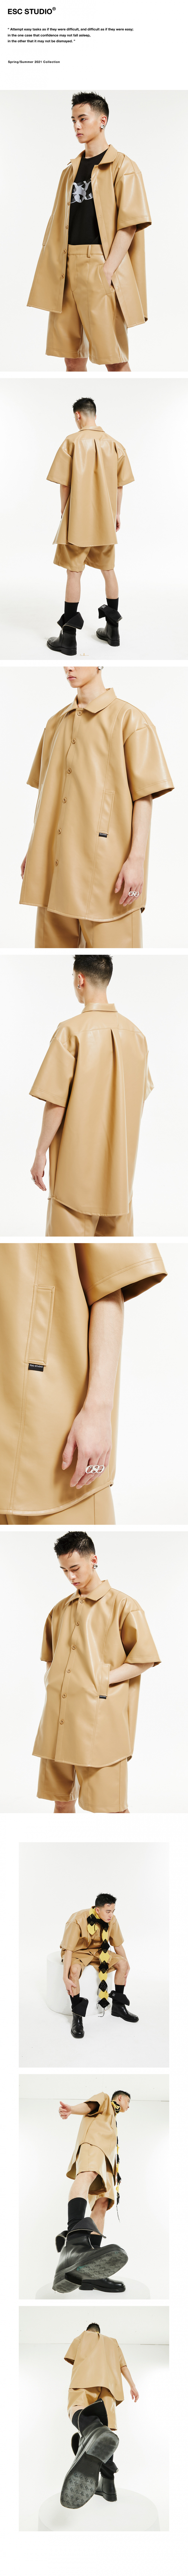 이에스씨 스튜디오(ESC STUDIO) Leather pocket short-sleeved shirt (beige)